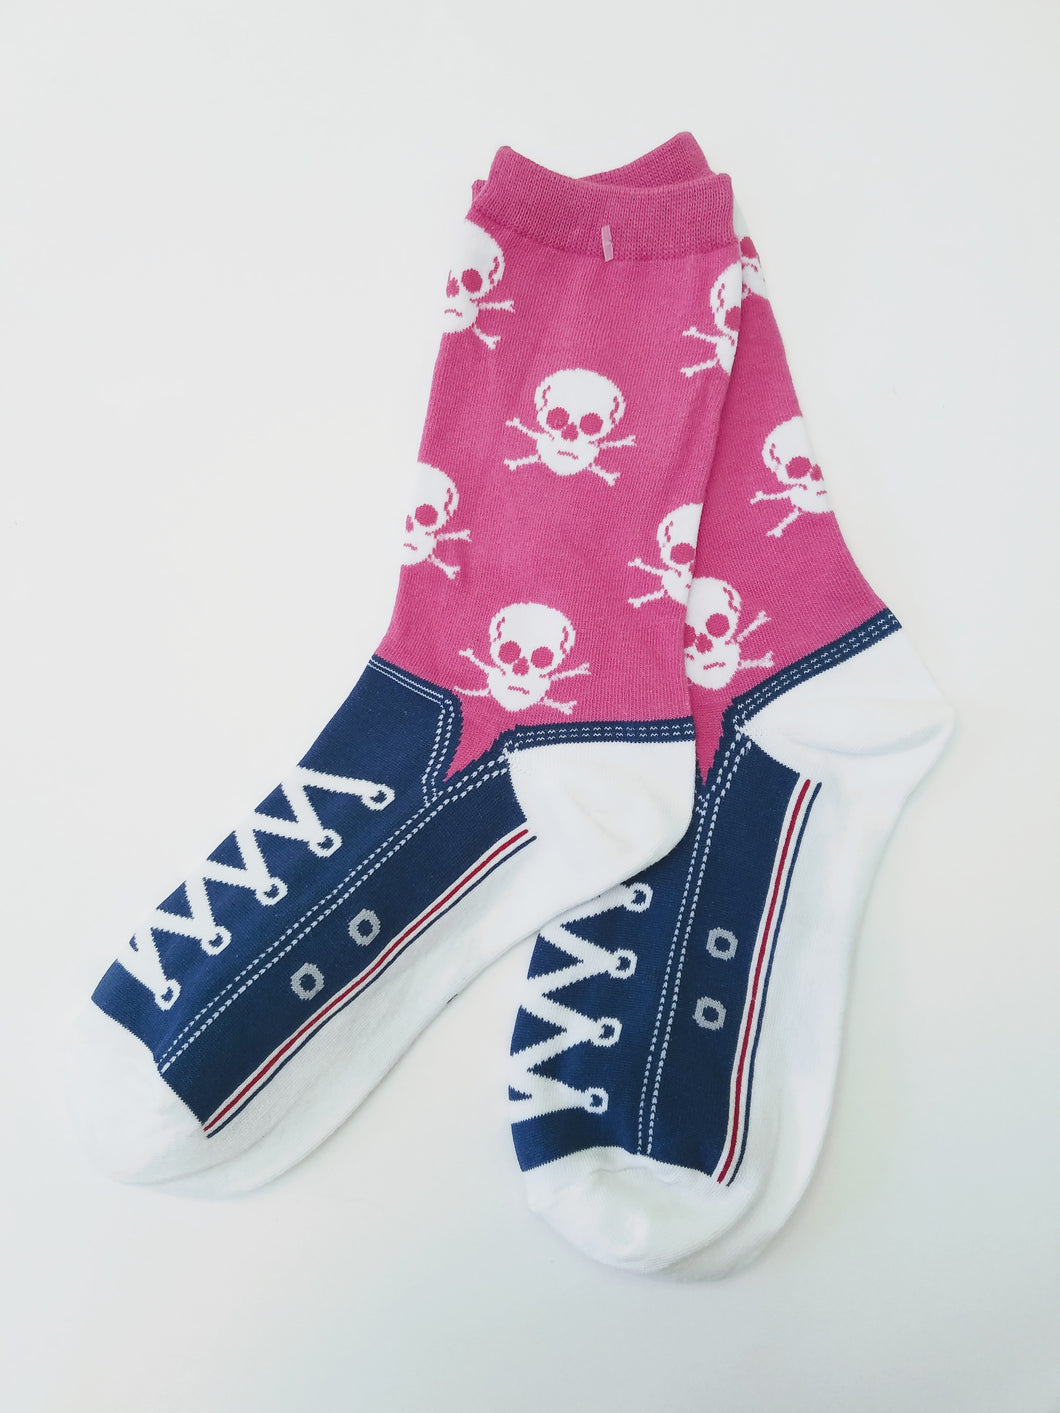 Skull & Sneakers Crew Socks